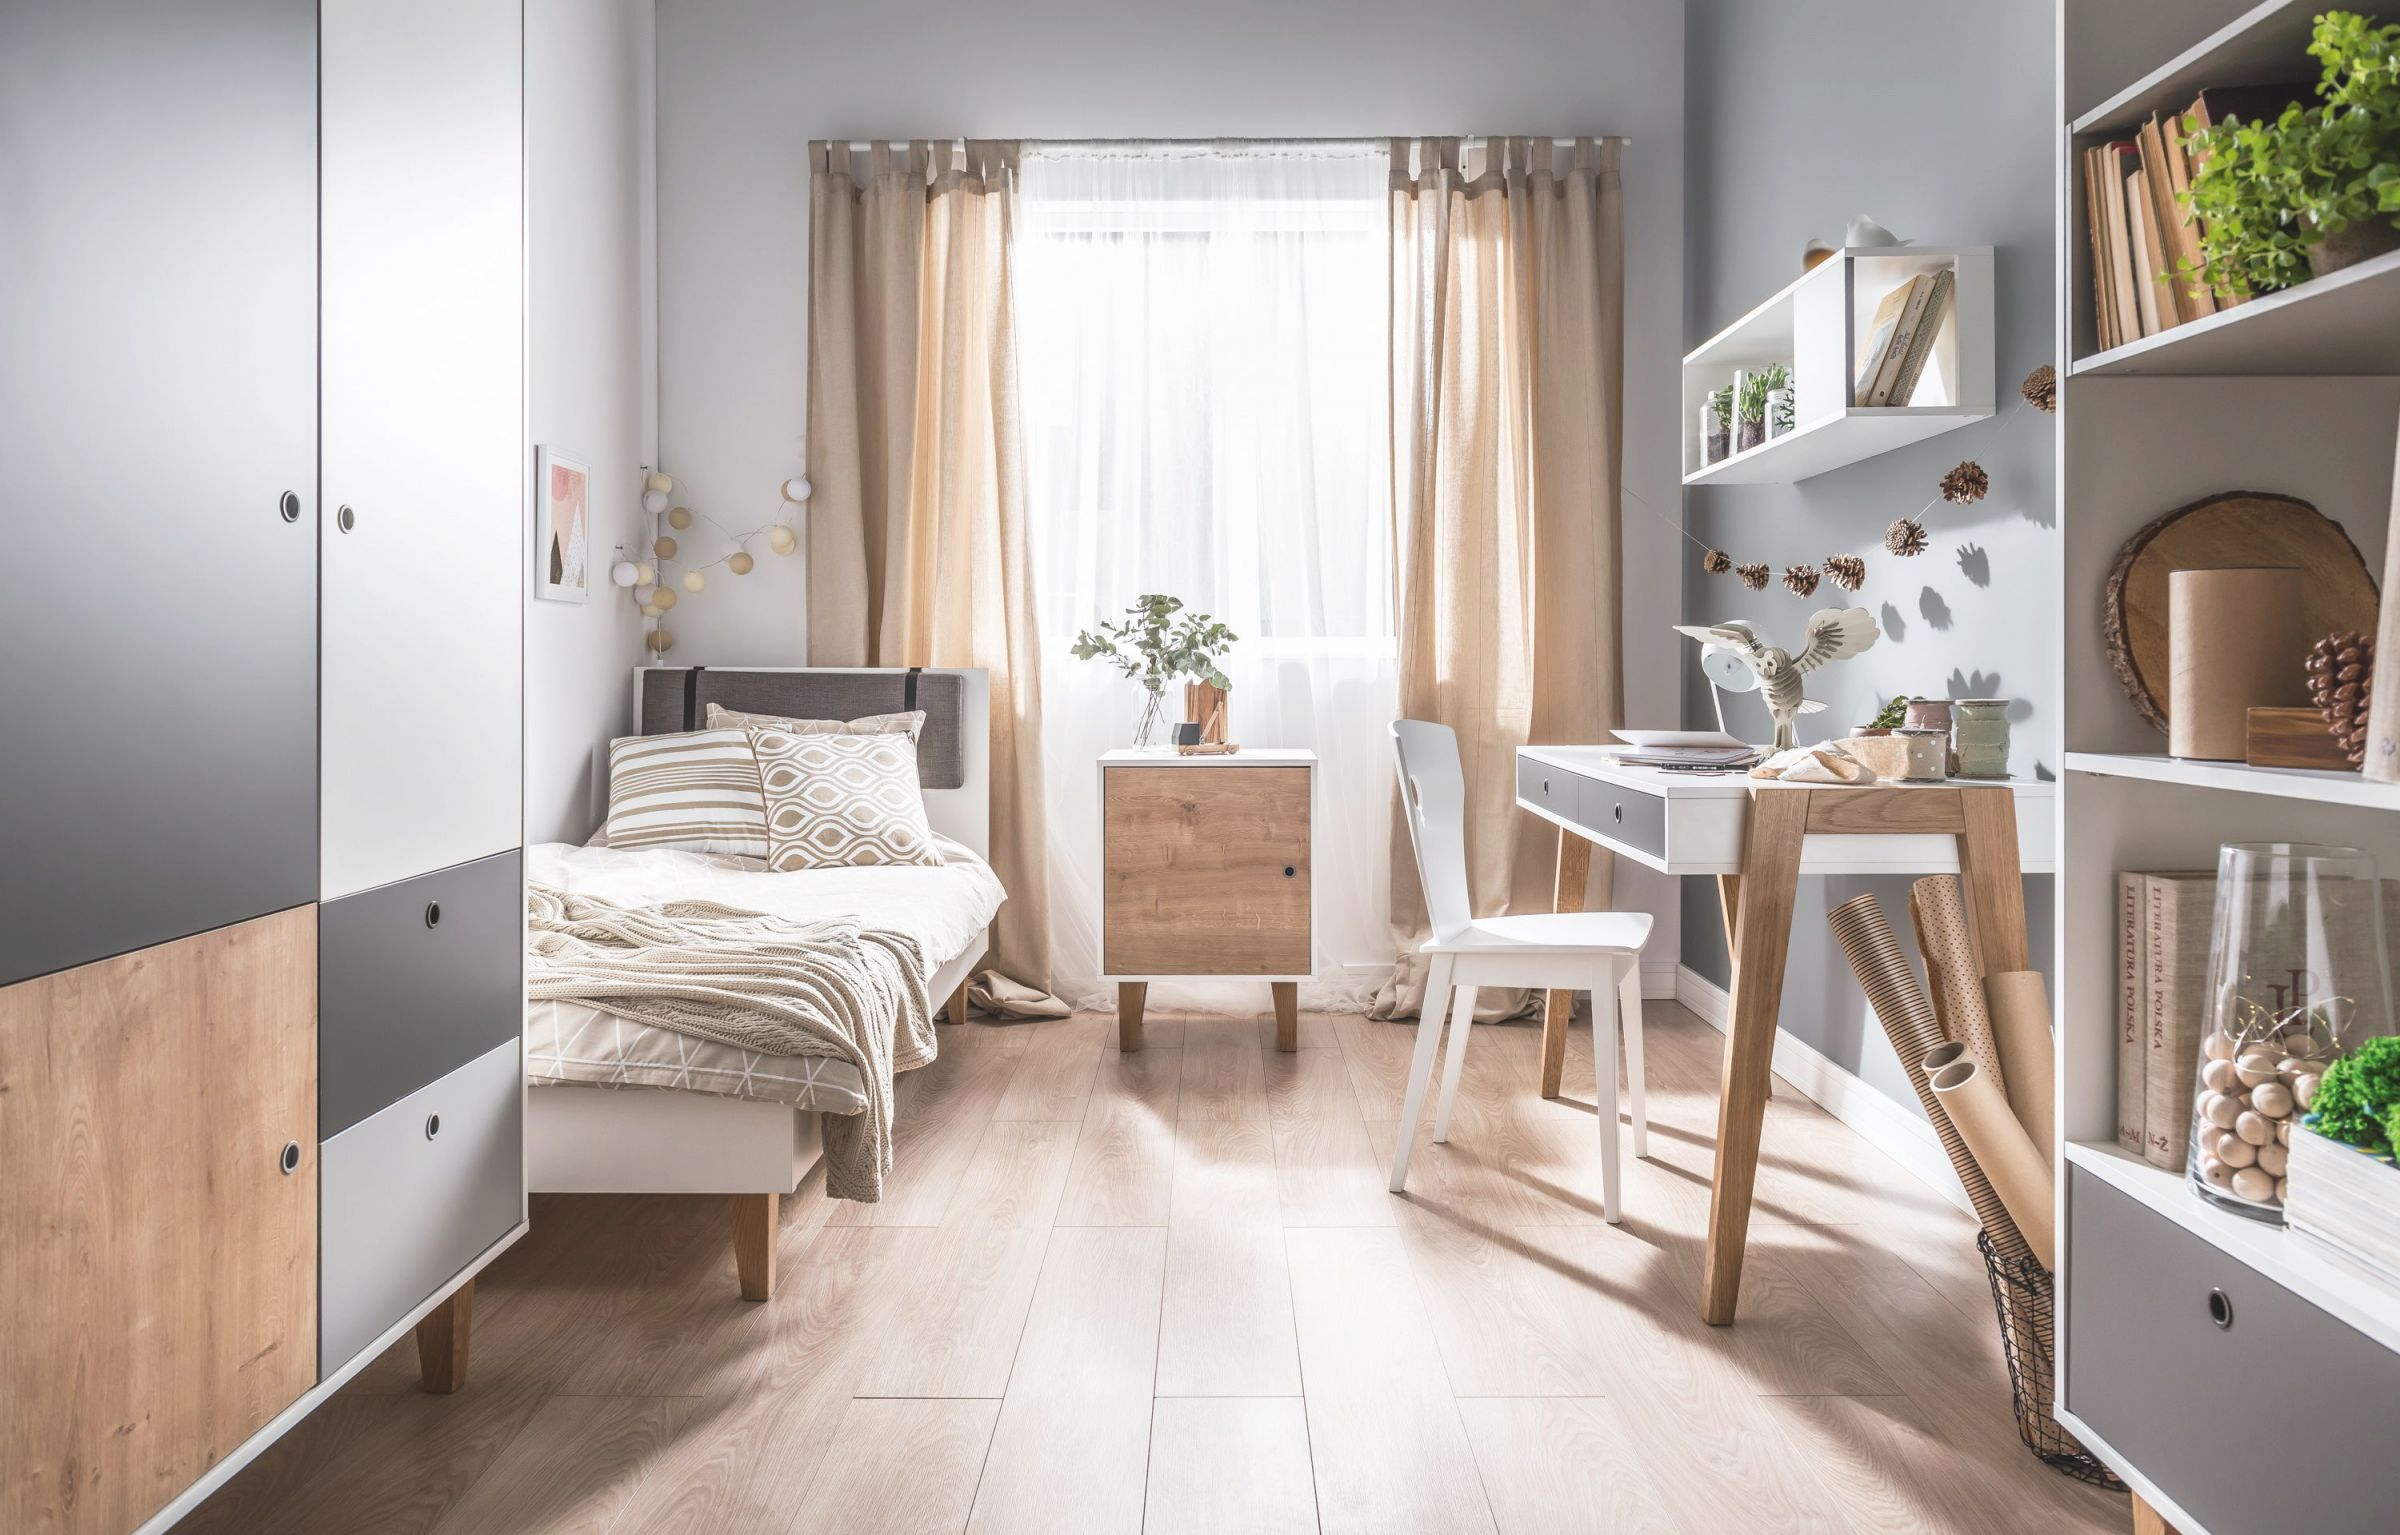 18 Small Bedroom Ideas To Fall In Love With – Small Bedroom within Elegant Small Bedroom Decorating Ideas